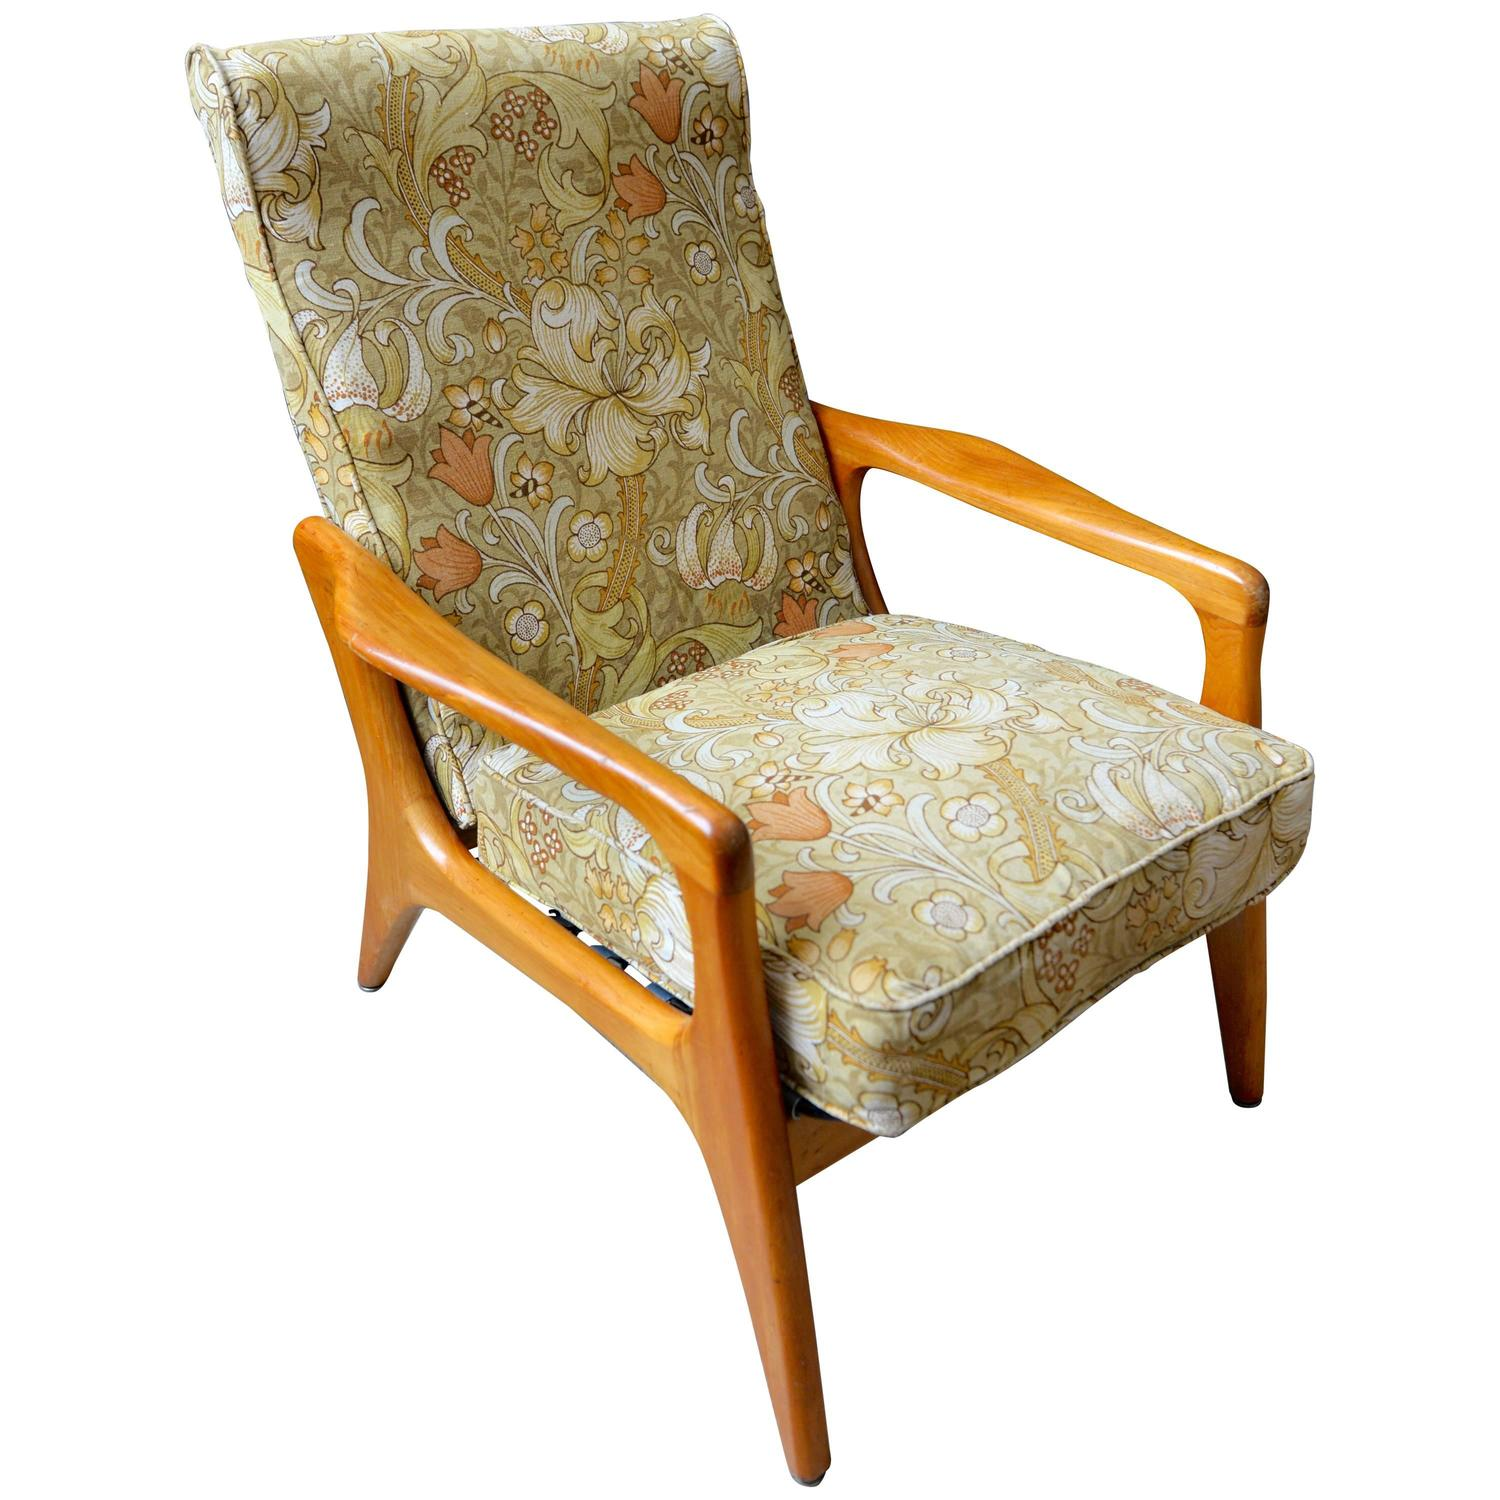 1960s Danish Lounge Chair Upholstered In William Morris